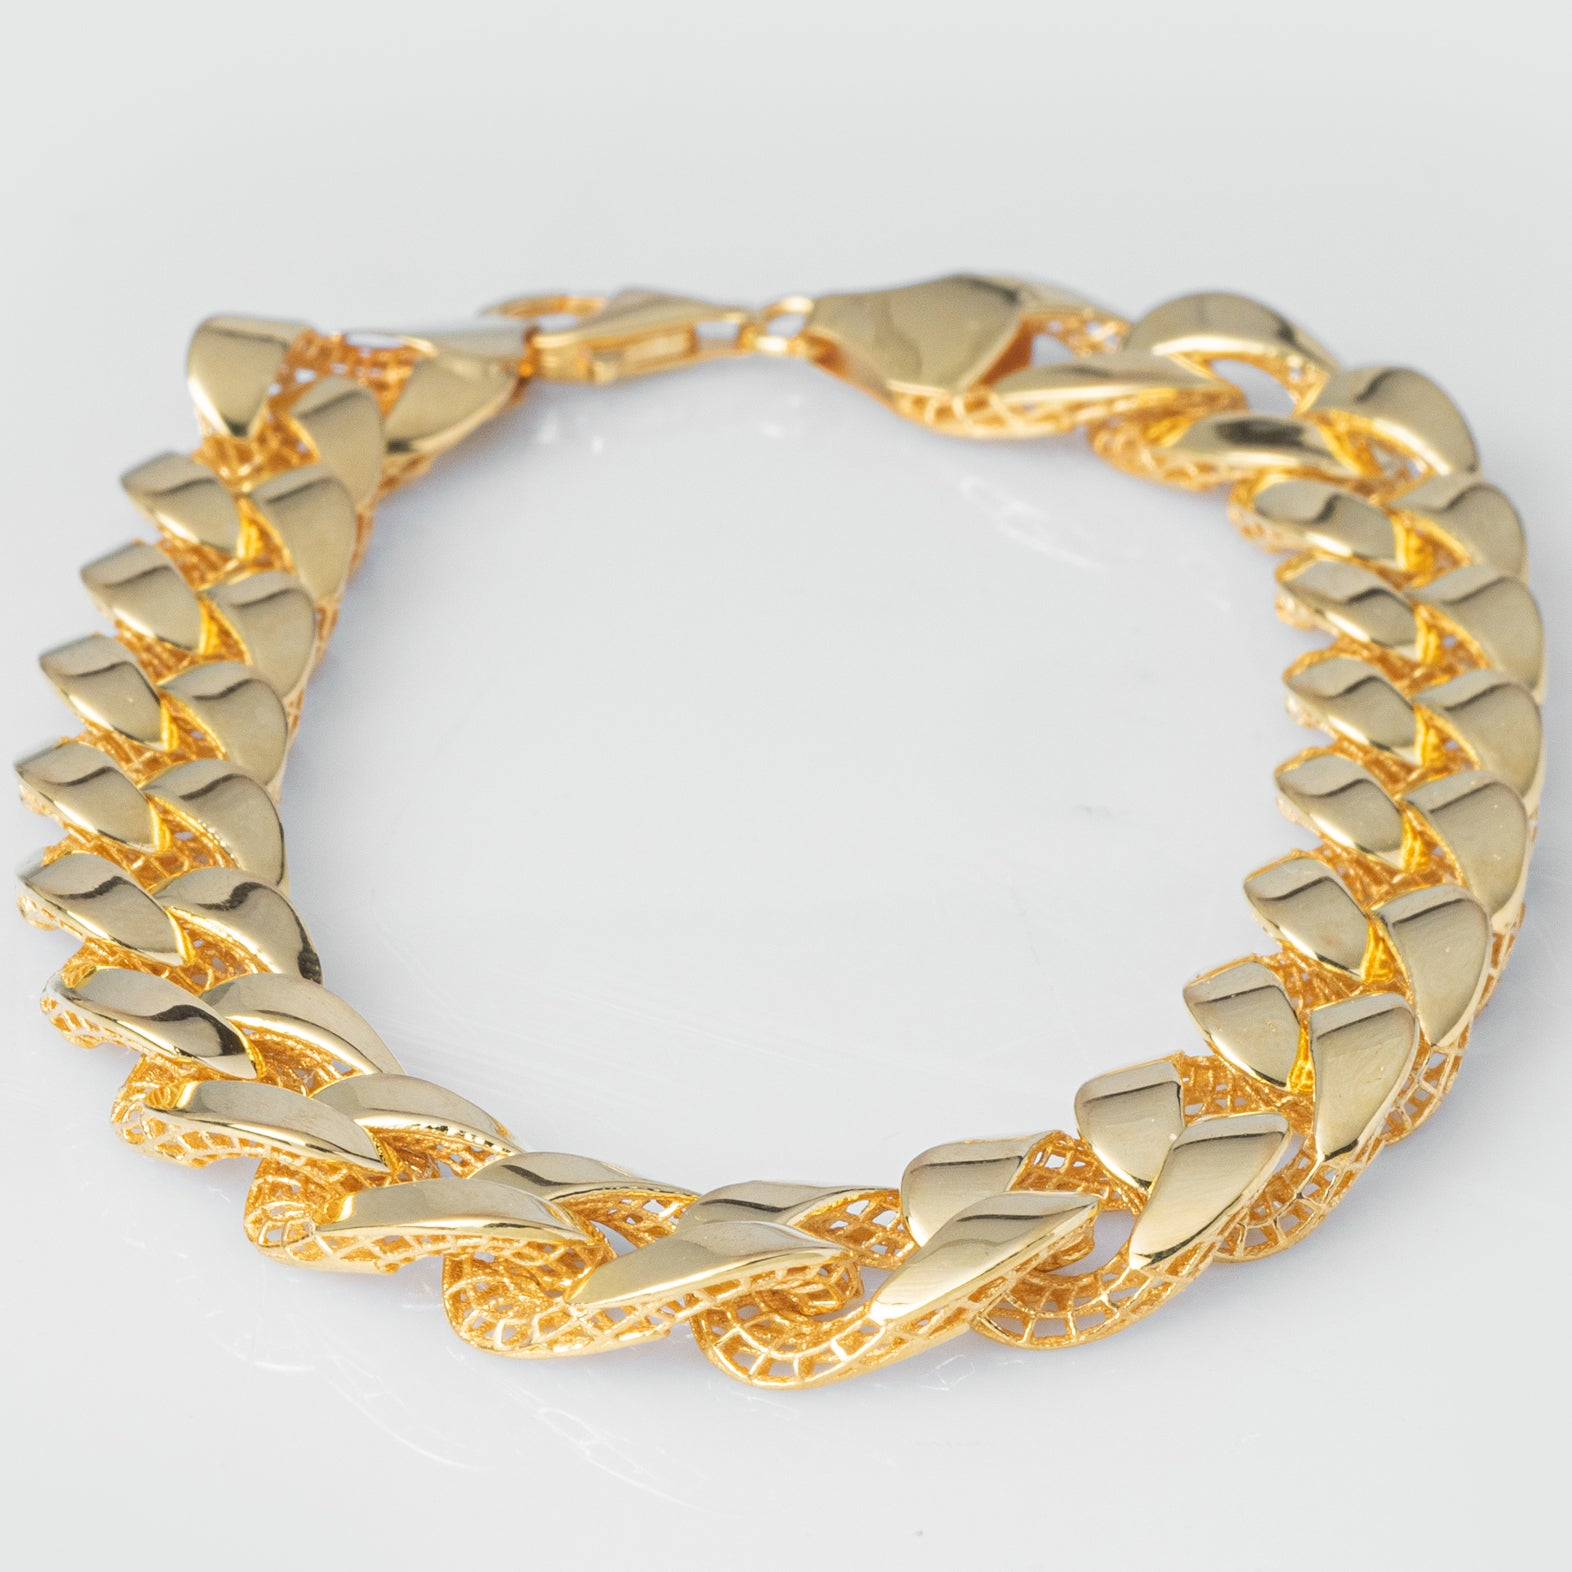 22ct Gold Curb Link Gents Bracelet with Mirror Finish and Mesh Support Backing fitted with a Lobster Clasp (22.6g) GBR-8042